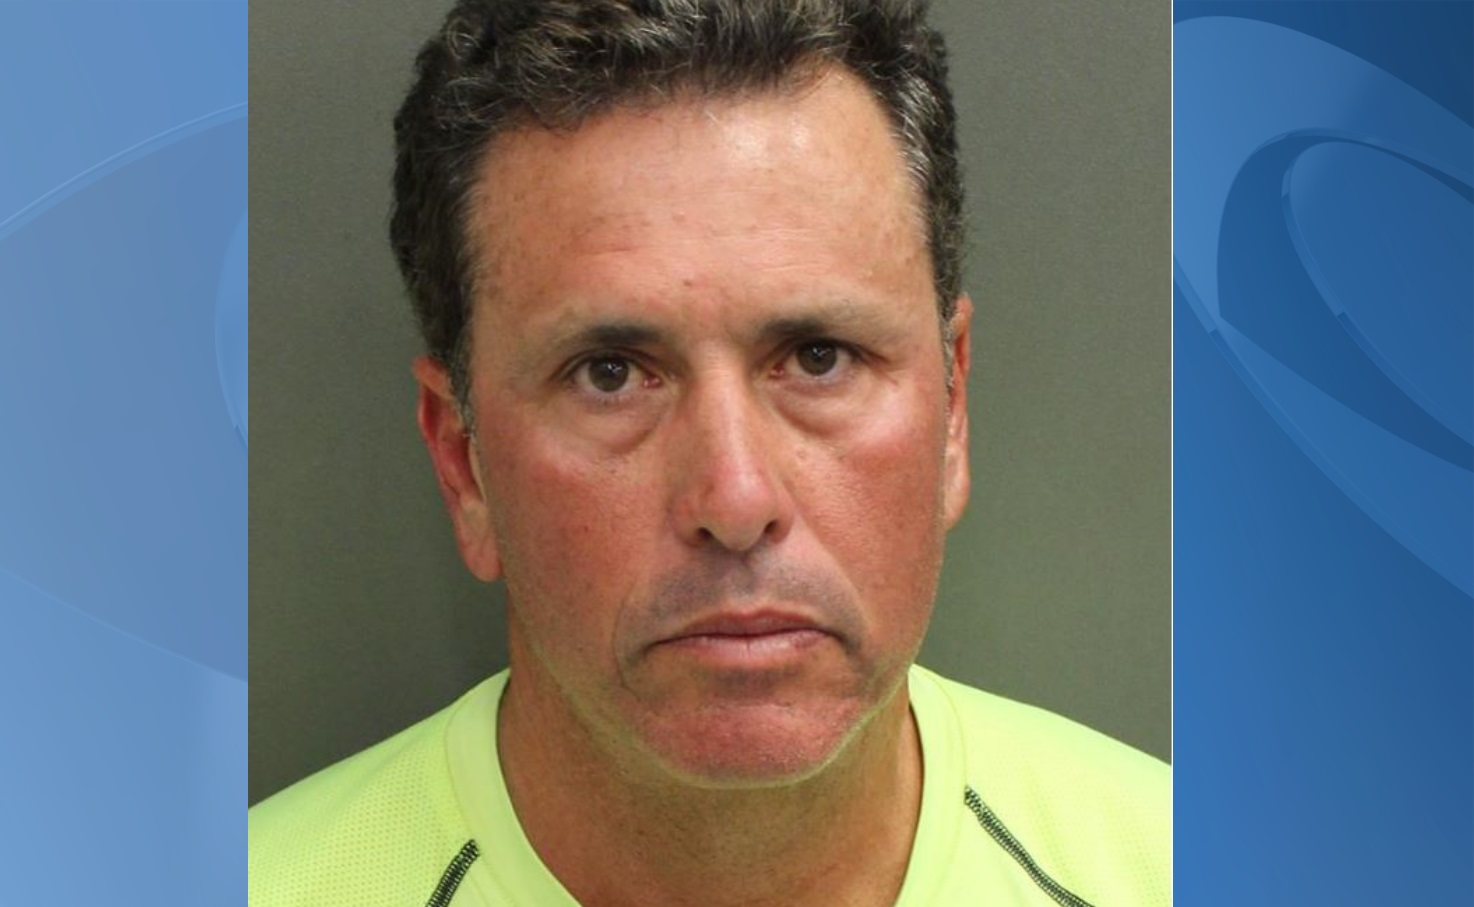 Last of the notorious 'Cocaine Cowboys' arrested in Florida